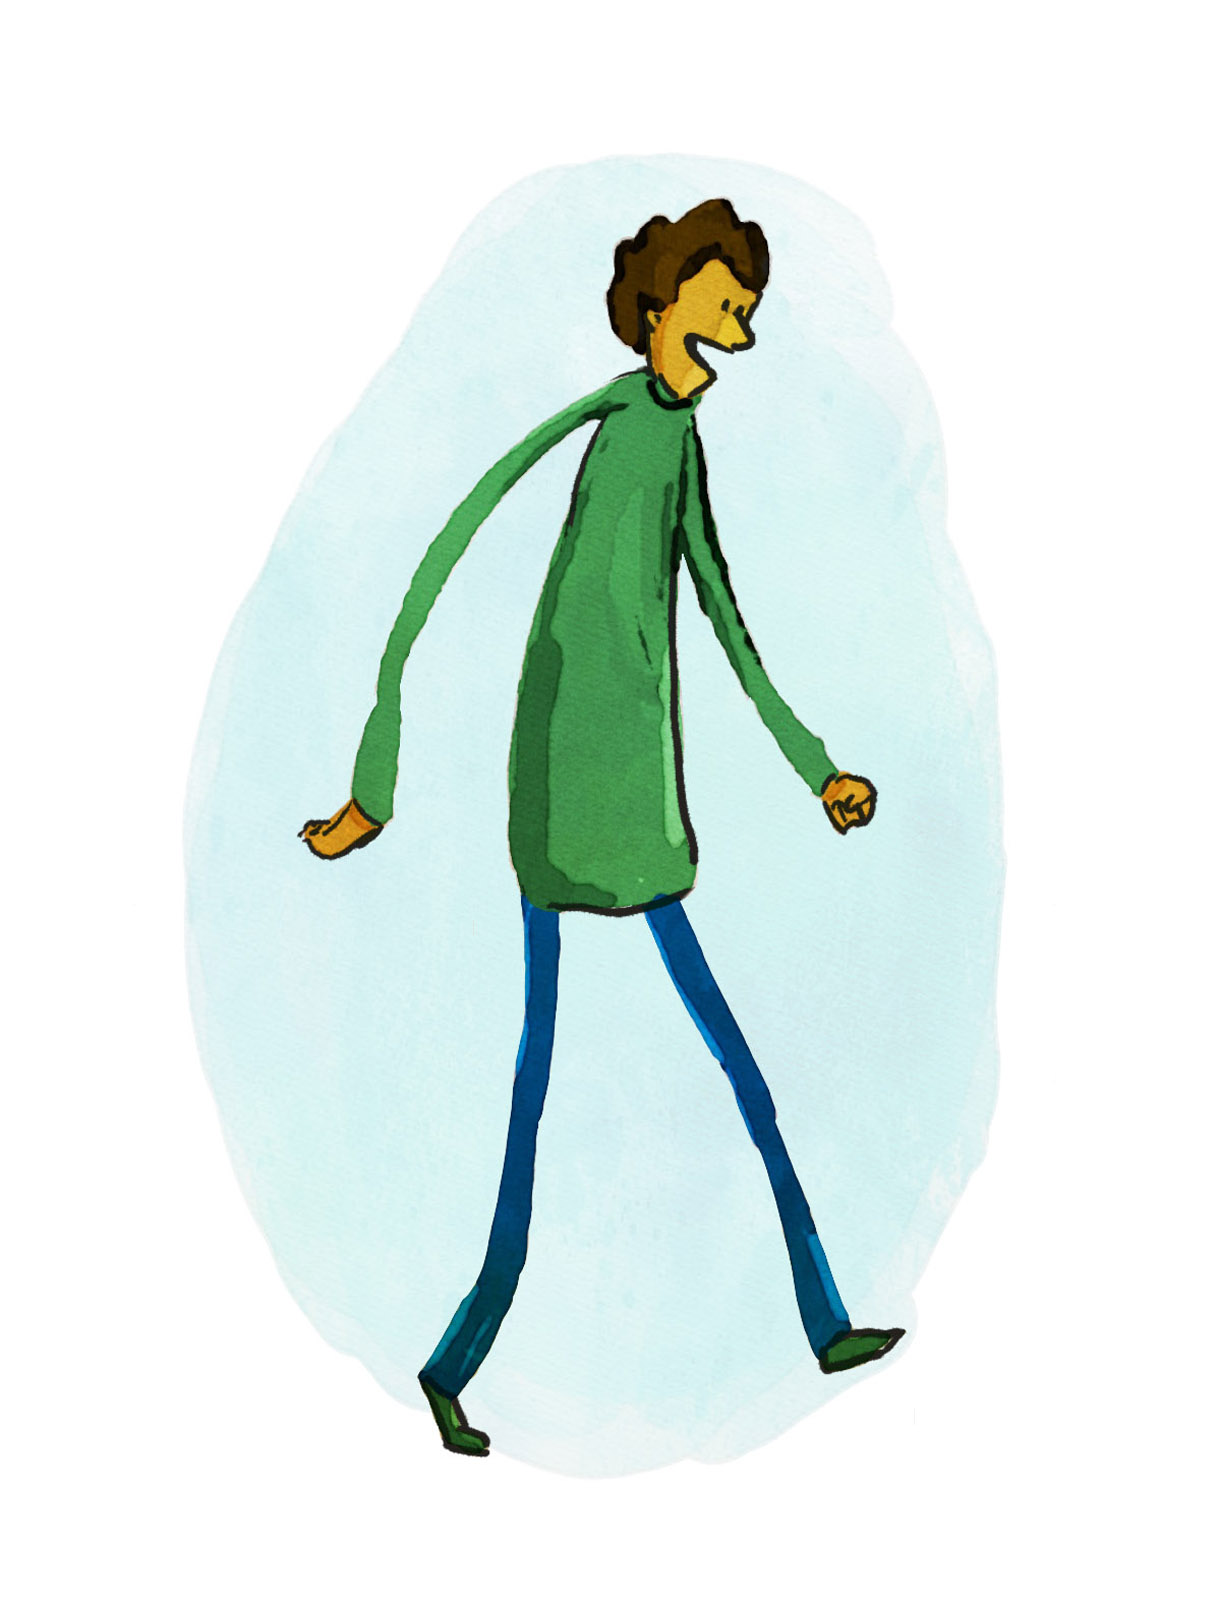 Man walking watercolor sketch